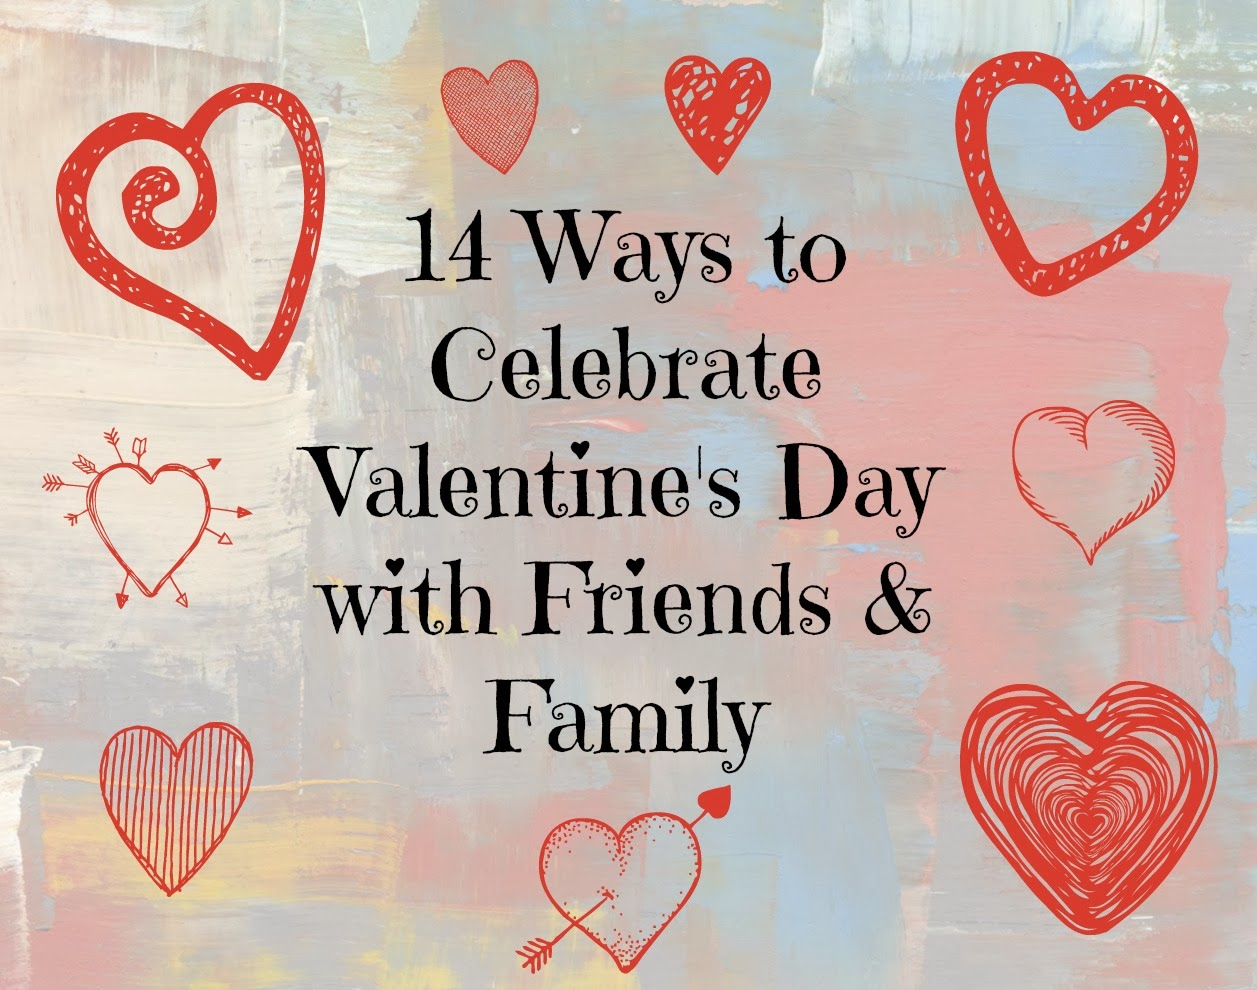 Earth To Victoria 14 Ways To Celebrate Valentine 39 S Day